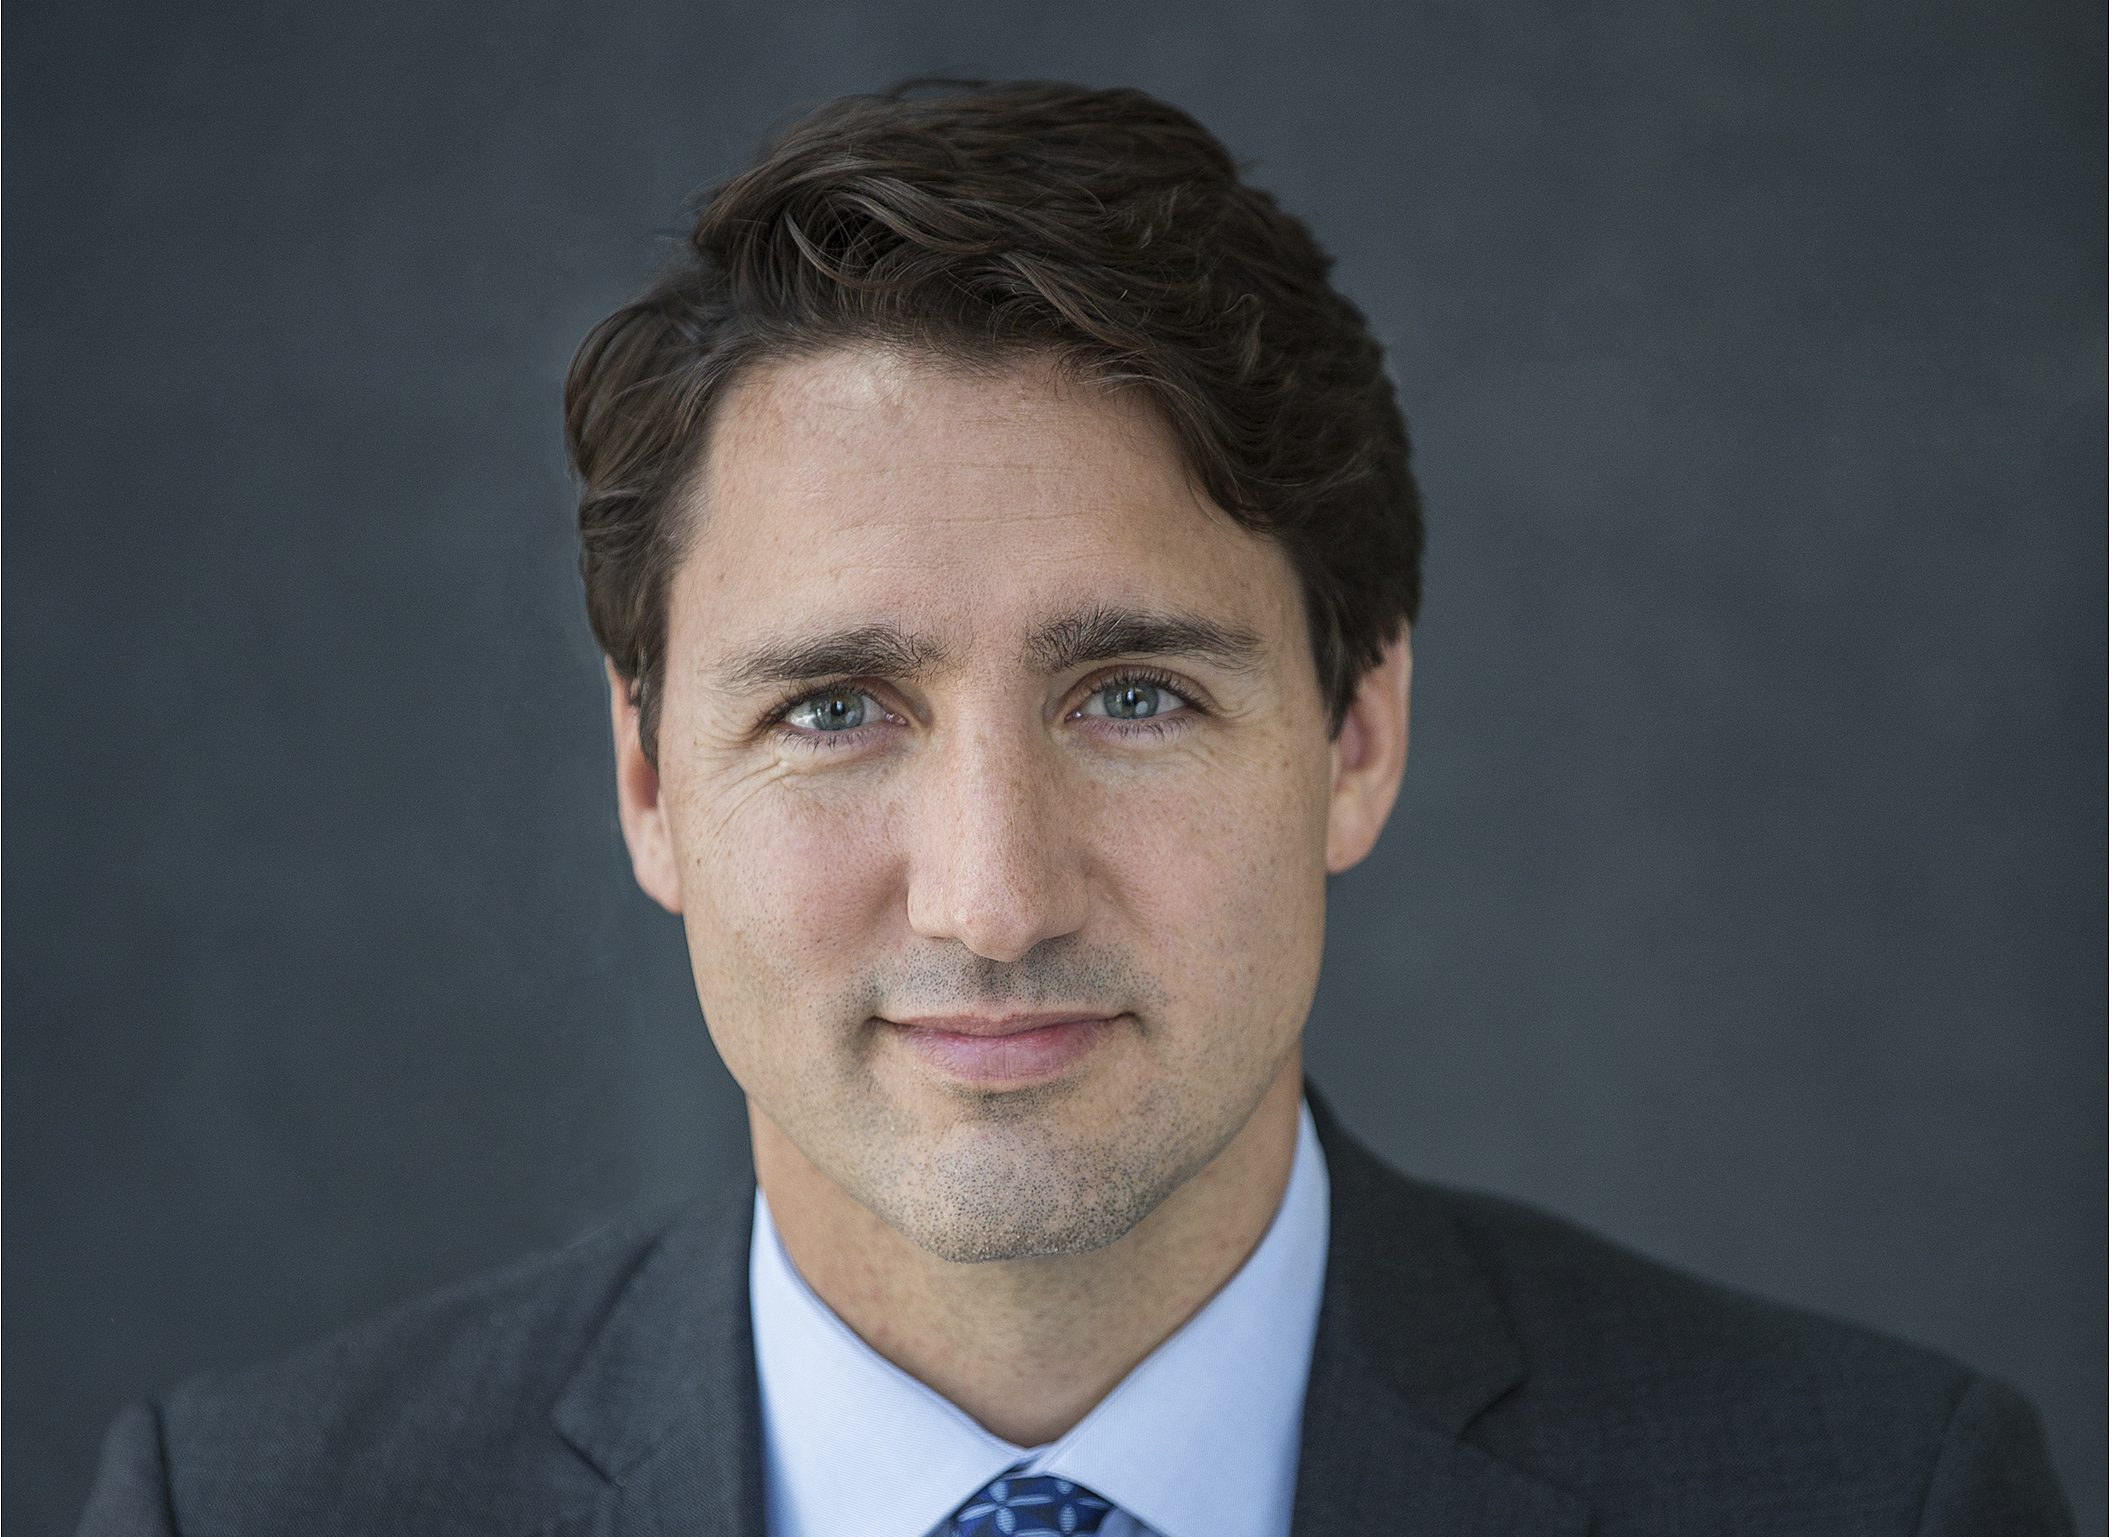 Justin Trudeau expected to comment further on brownface controversy